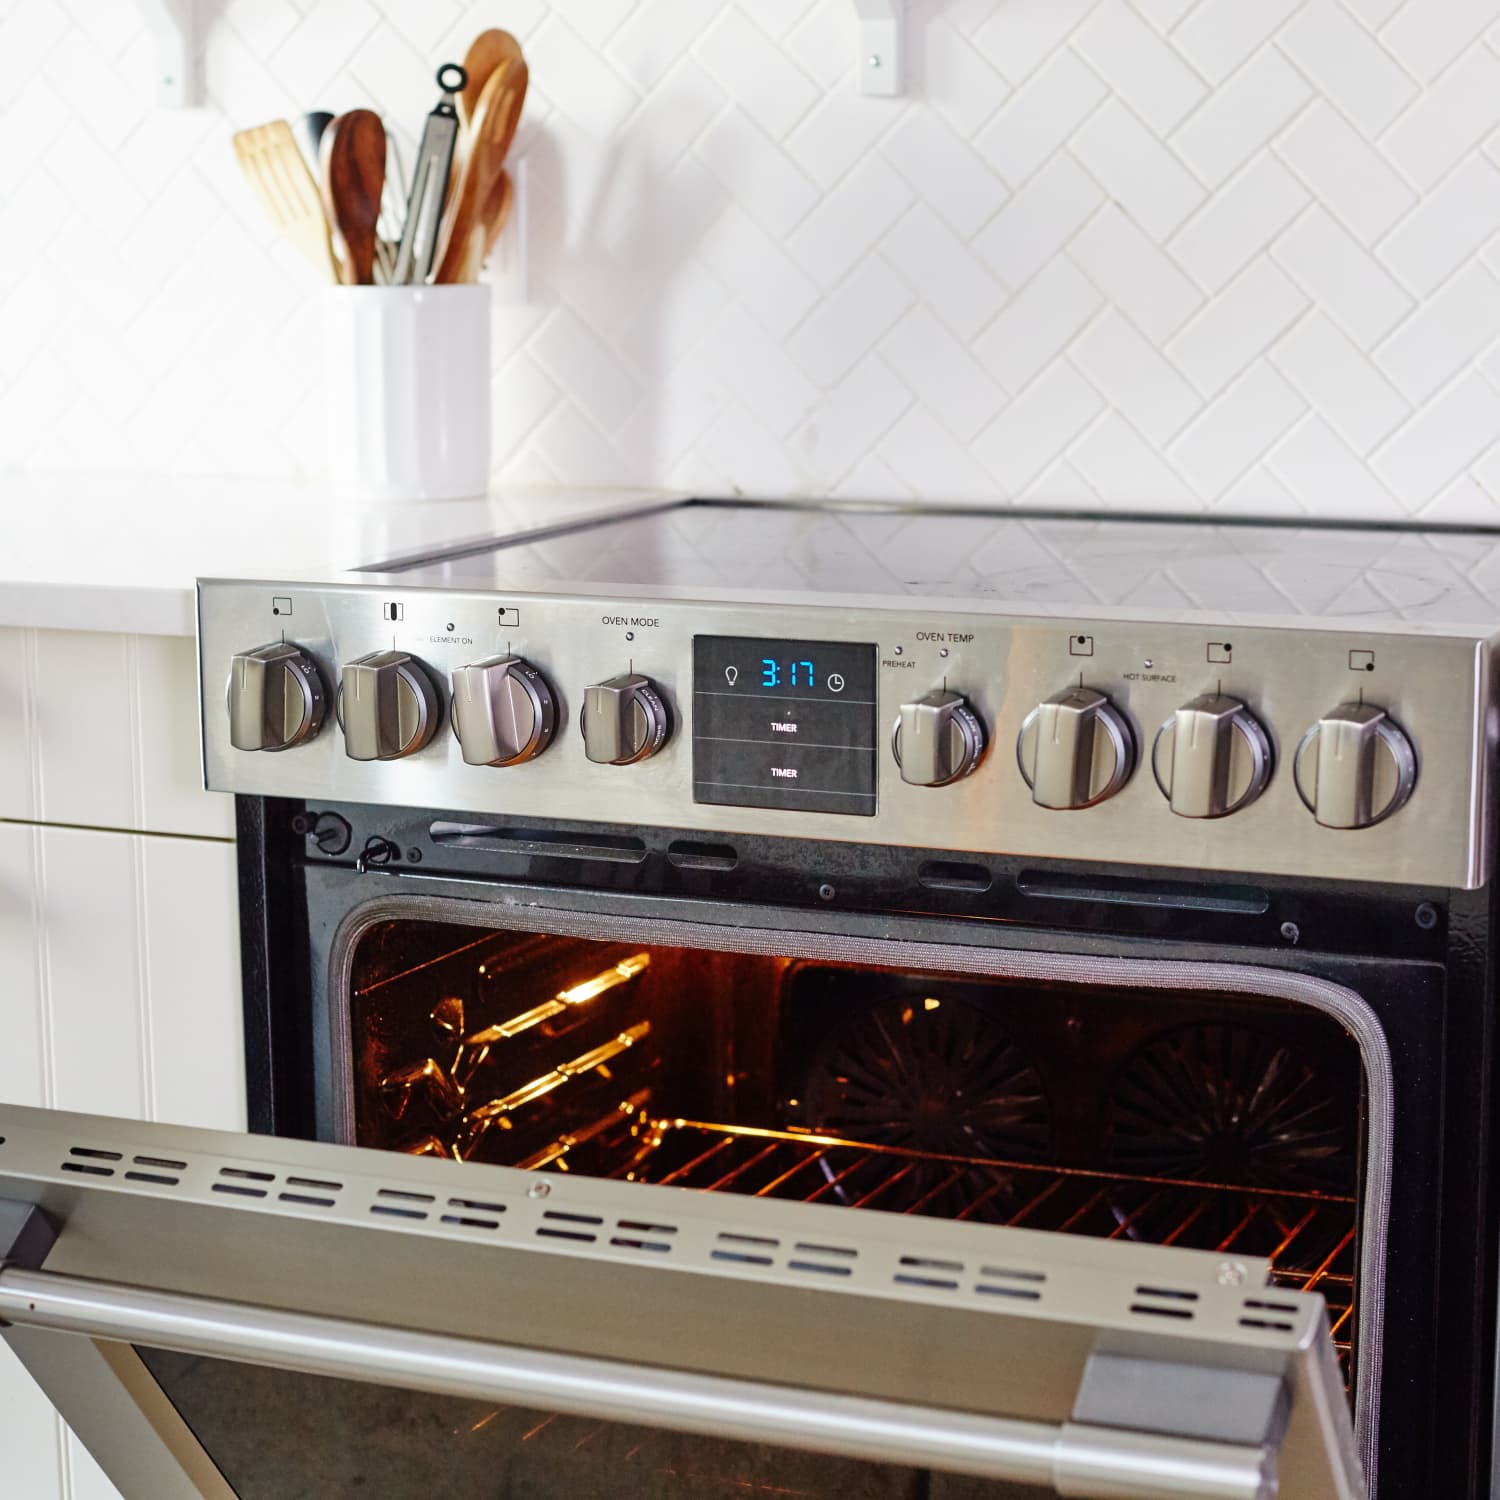 How To Clean an Oven with Baking Soda & Vinegar | Kitchn